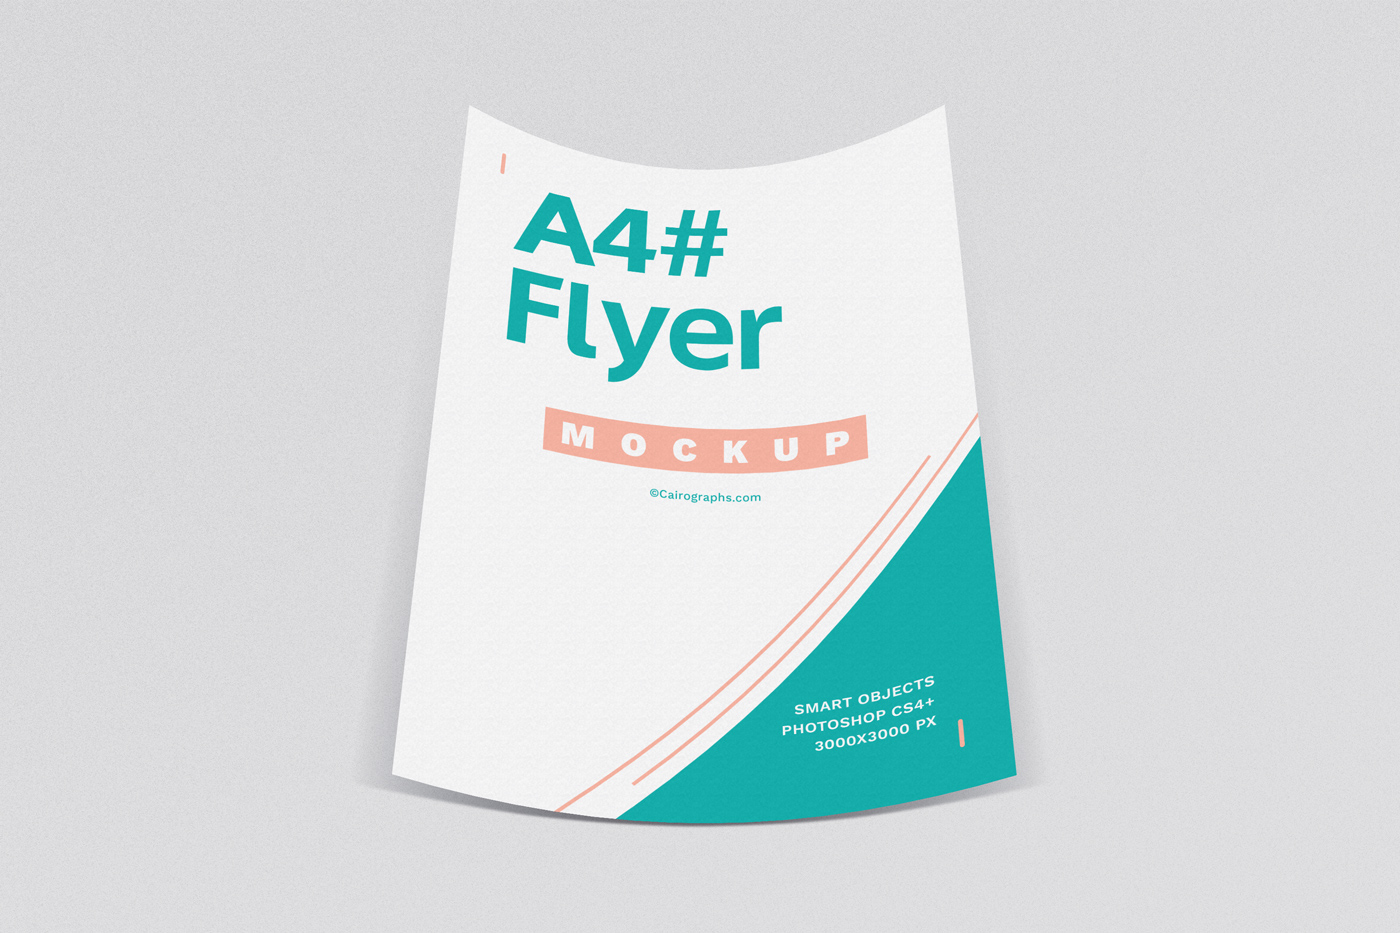 Posters & Flyers Mockups Vol.2 example image 6